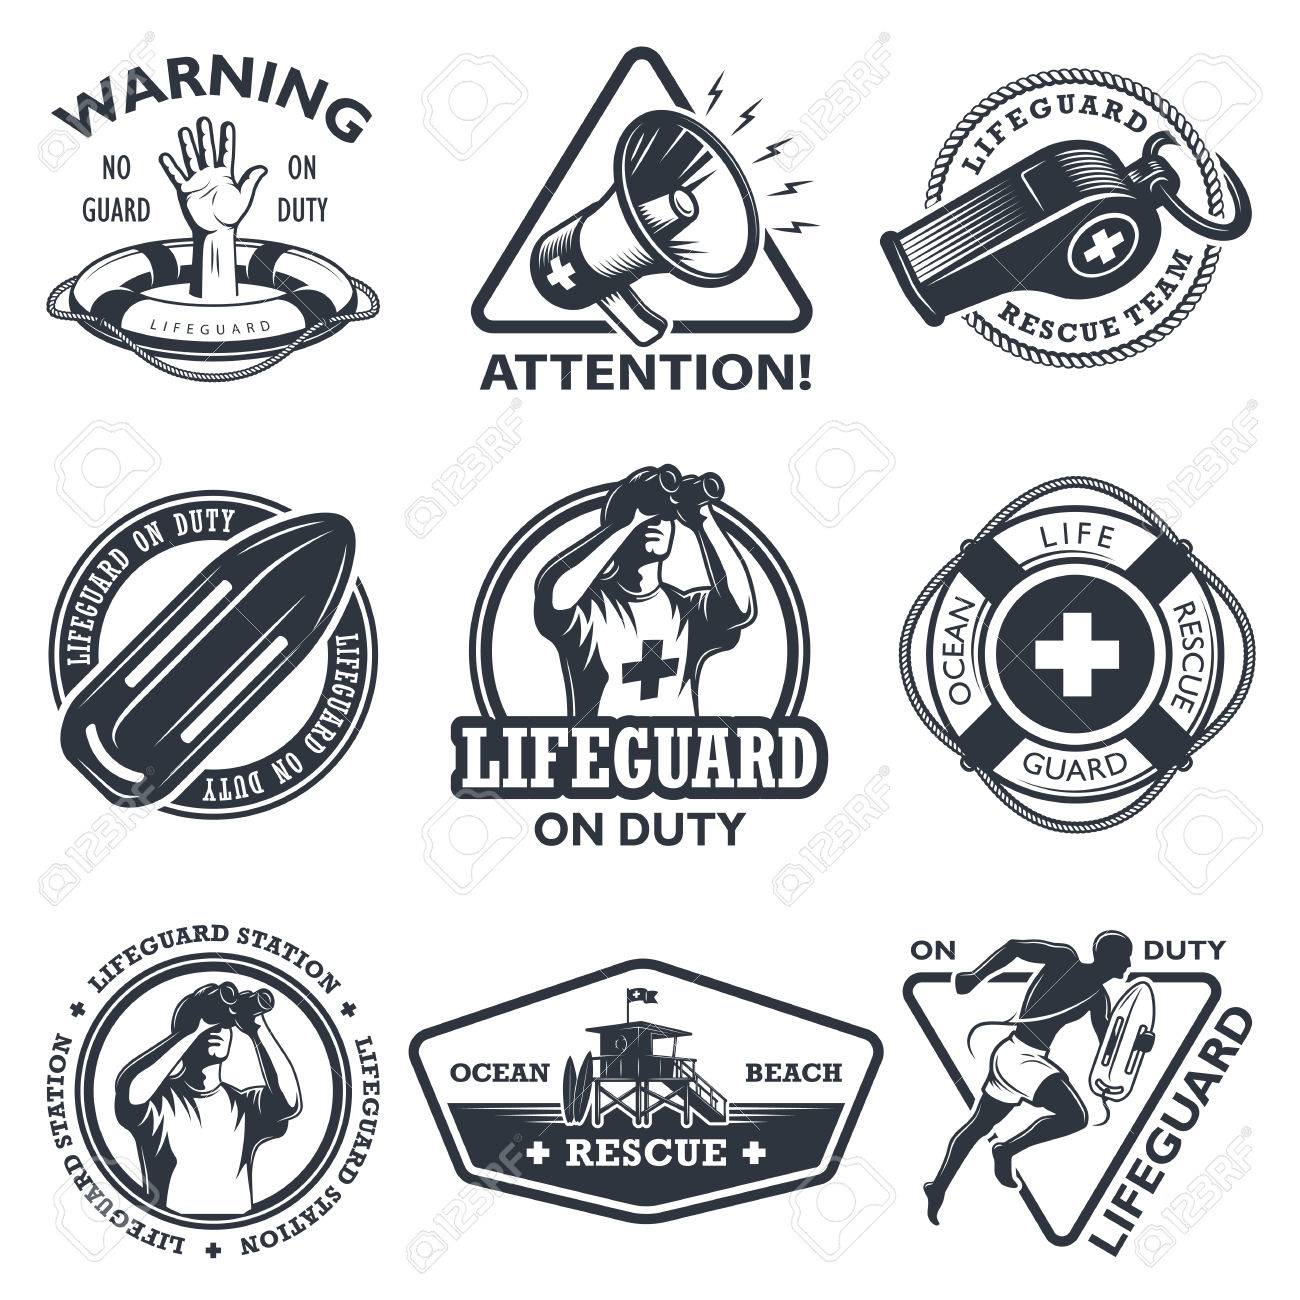 9c11d64bbe2 Set of vintage lifeguard emblems. Monochrome style. isolated on white  background. Stock Vector